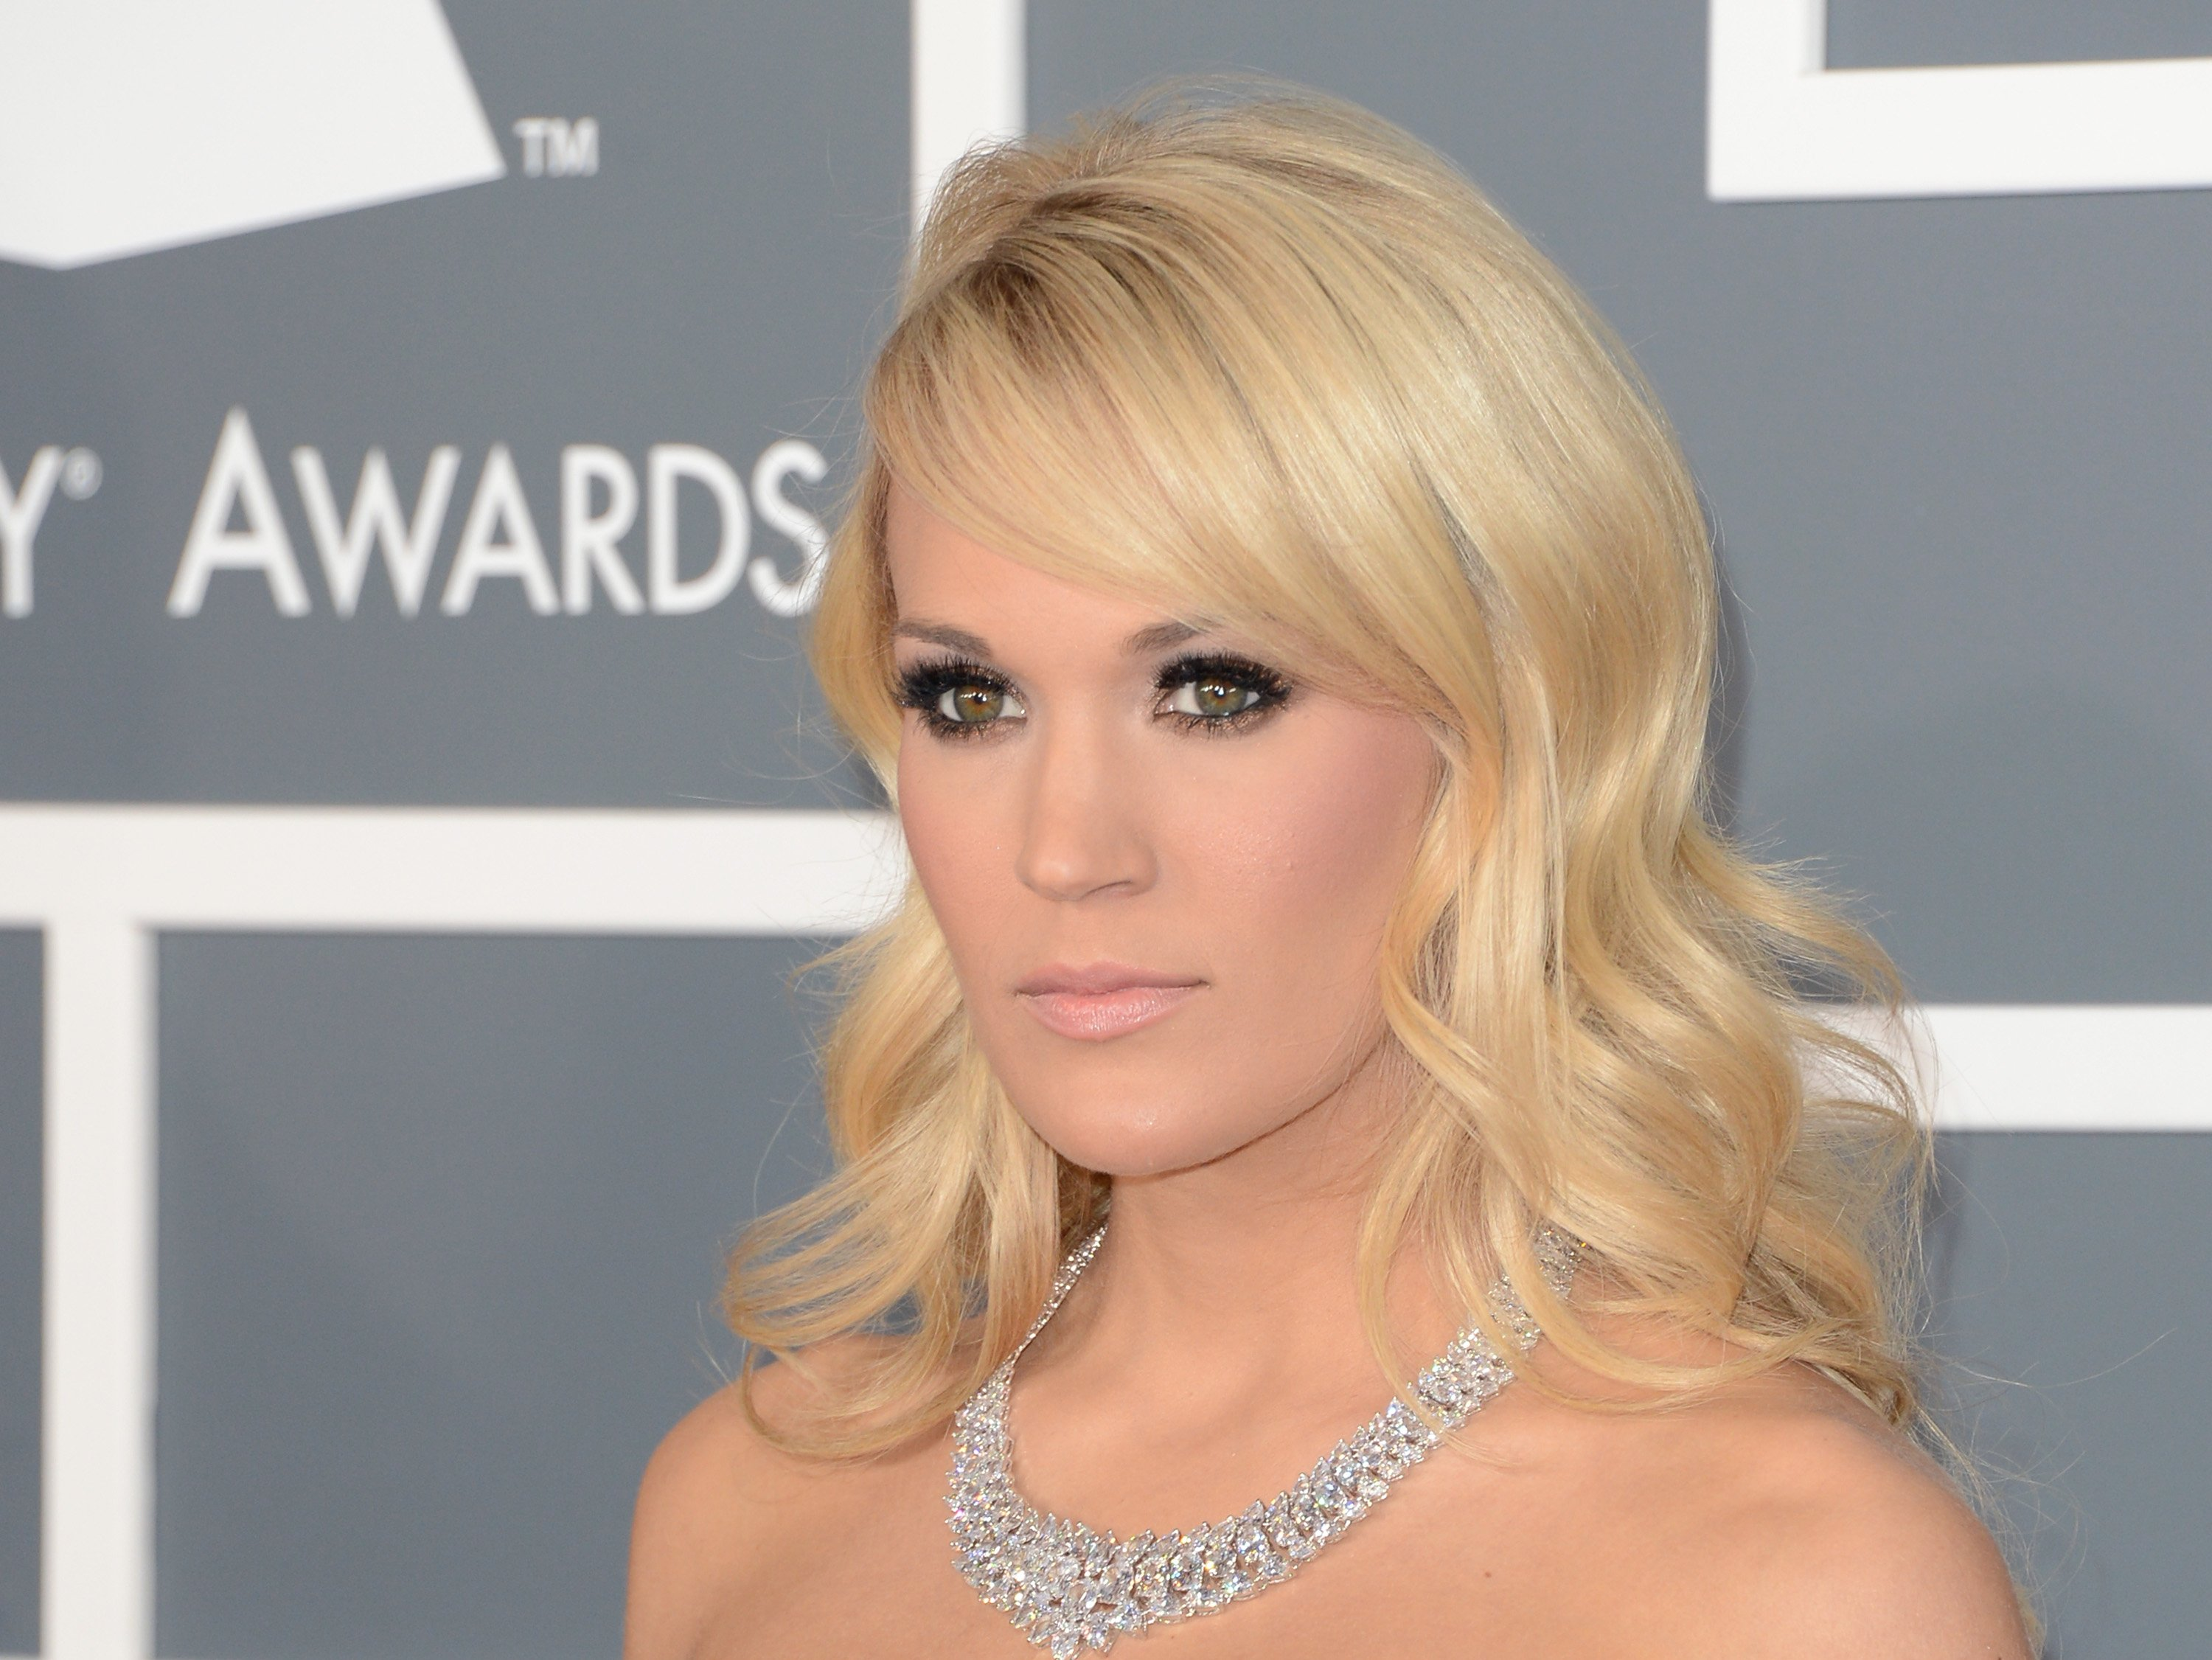 Carrie Underwood at the 55th Annual GRAMMY Awards at Staples Center on February 10, 2013. | Source: Getty Images